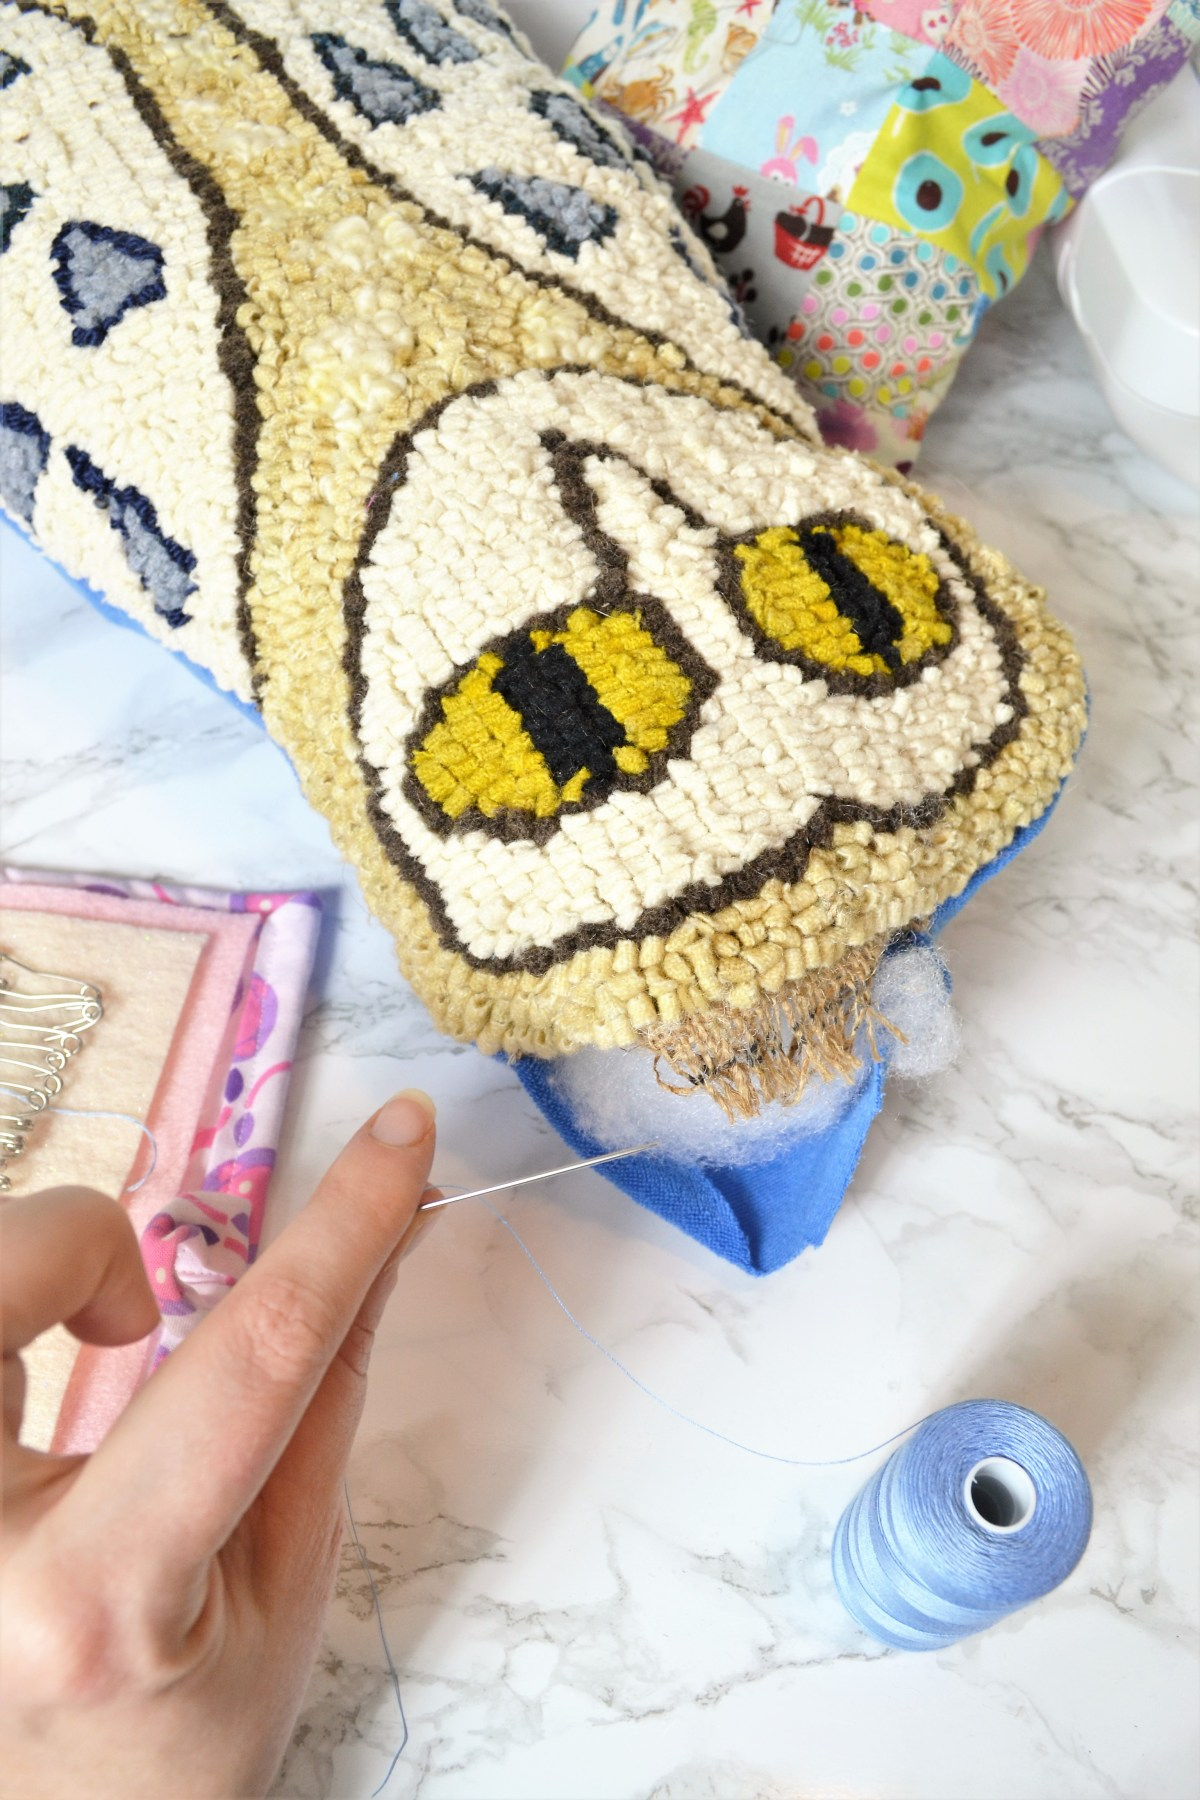 Rug Hooking: How to Make Your Rug Hooking Patterns into a Pillow! - hand stitch closed